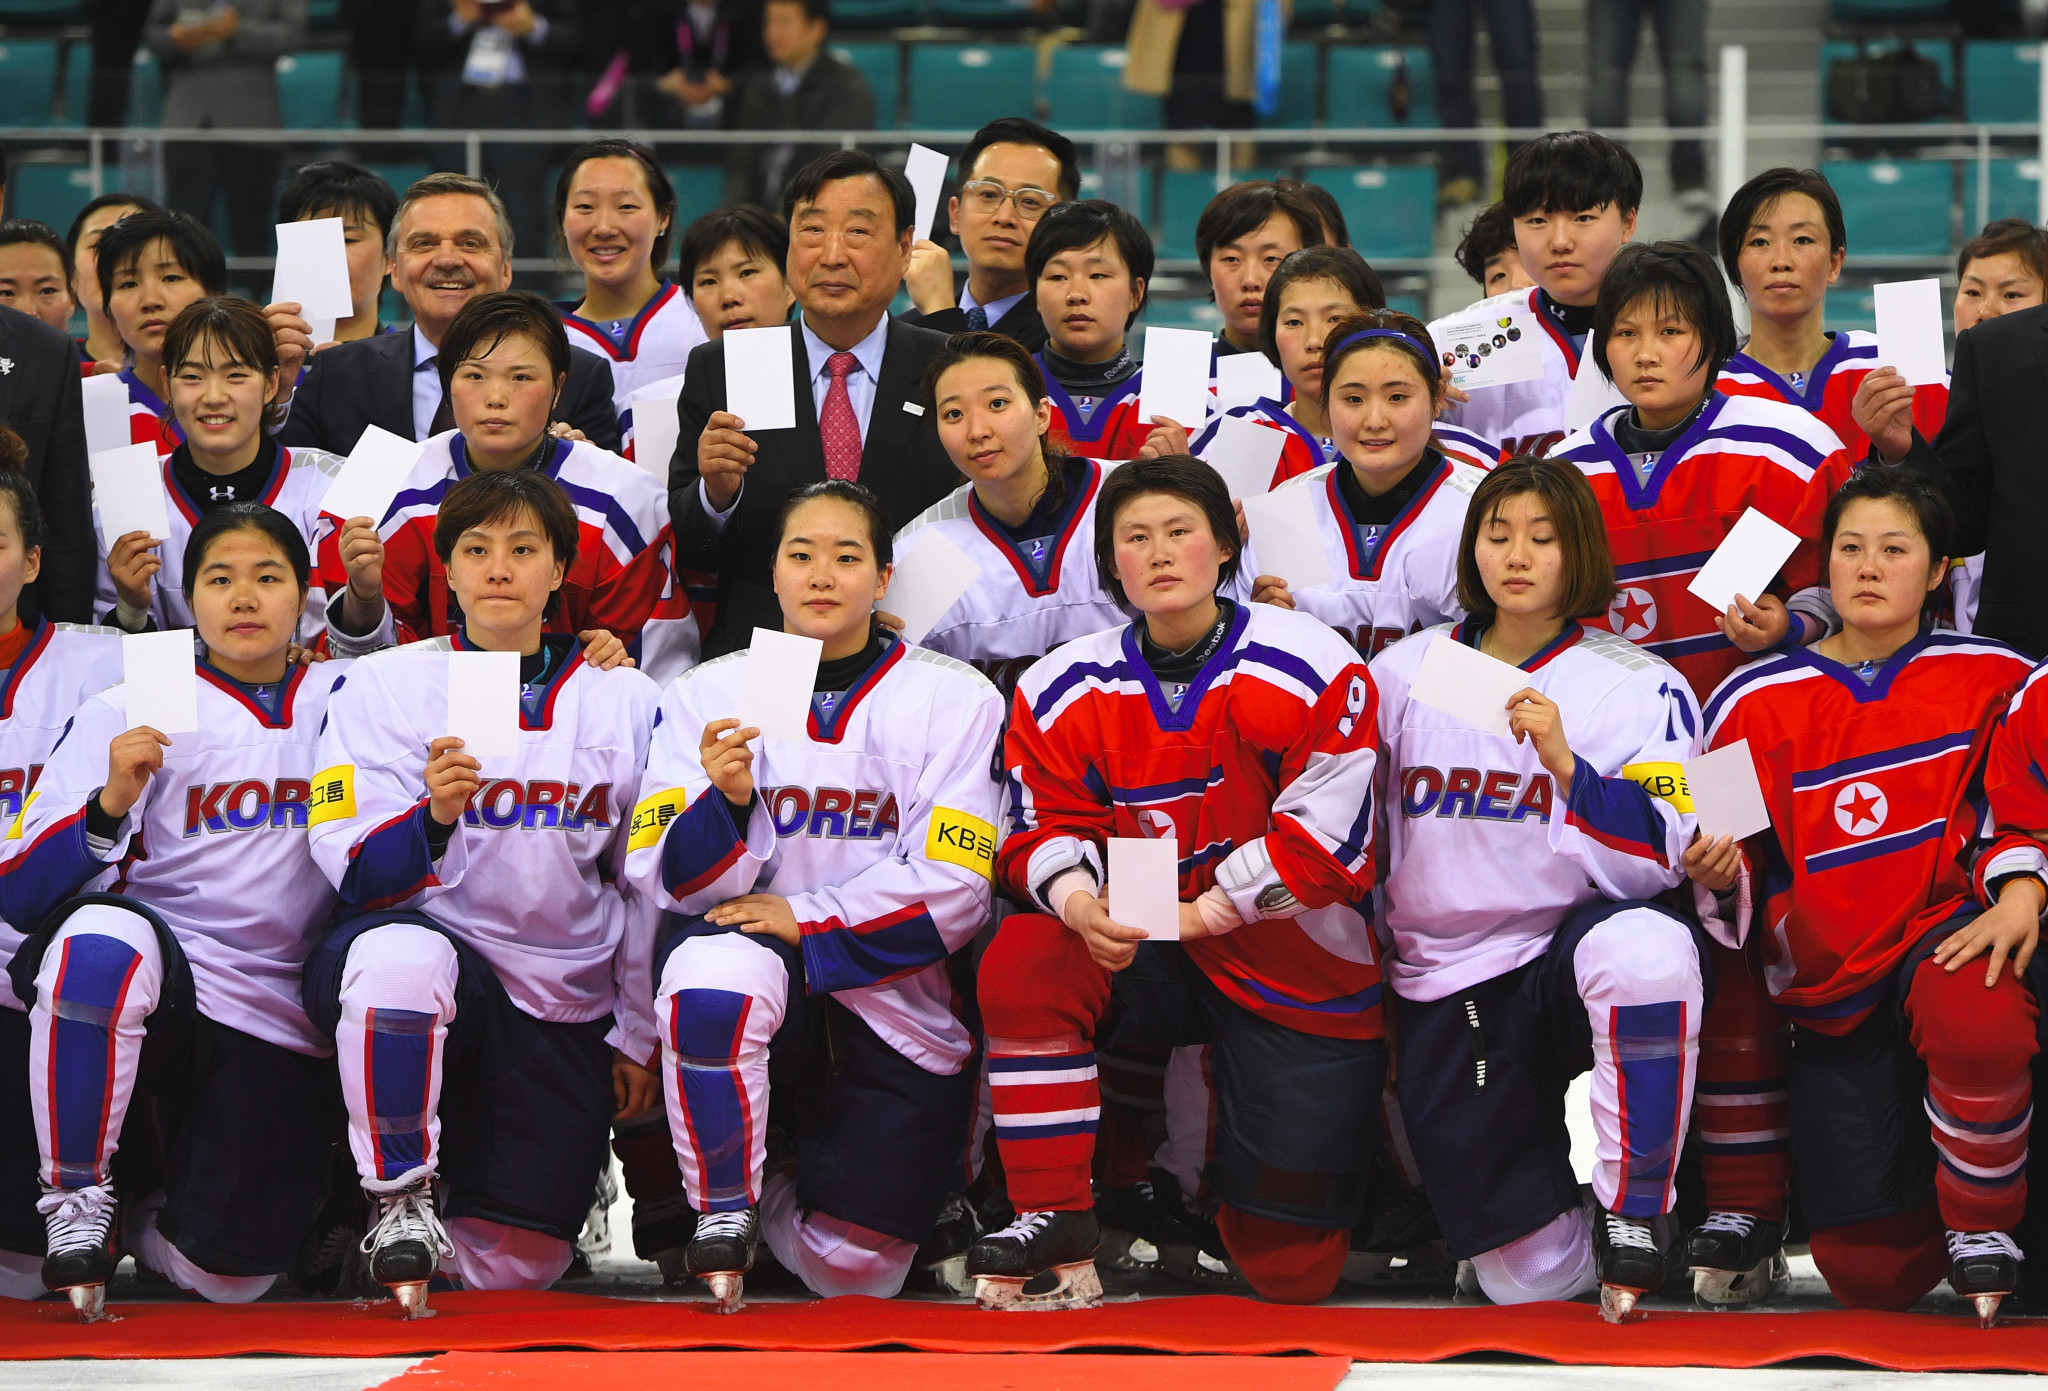 North and South Korean ice hockey players pose together last year after a match at the World Championships ©Getty Images